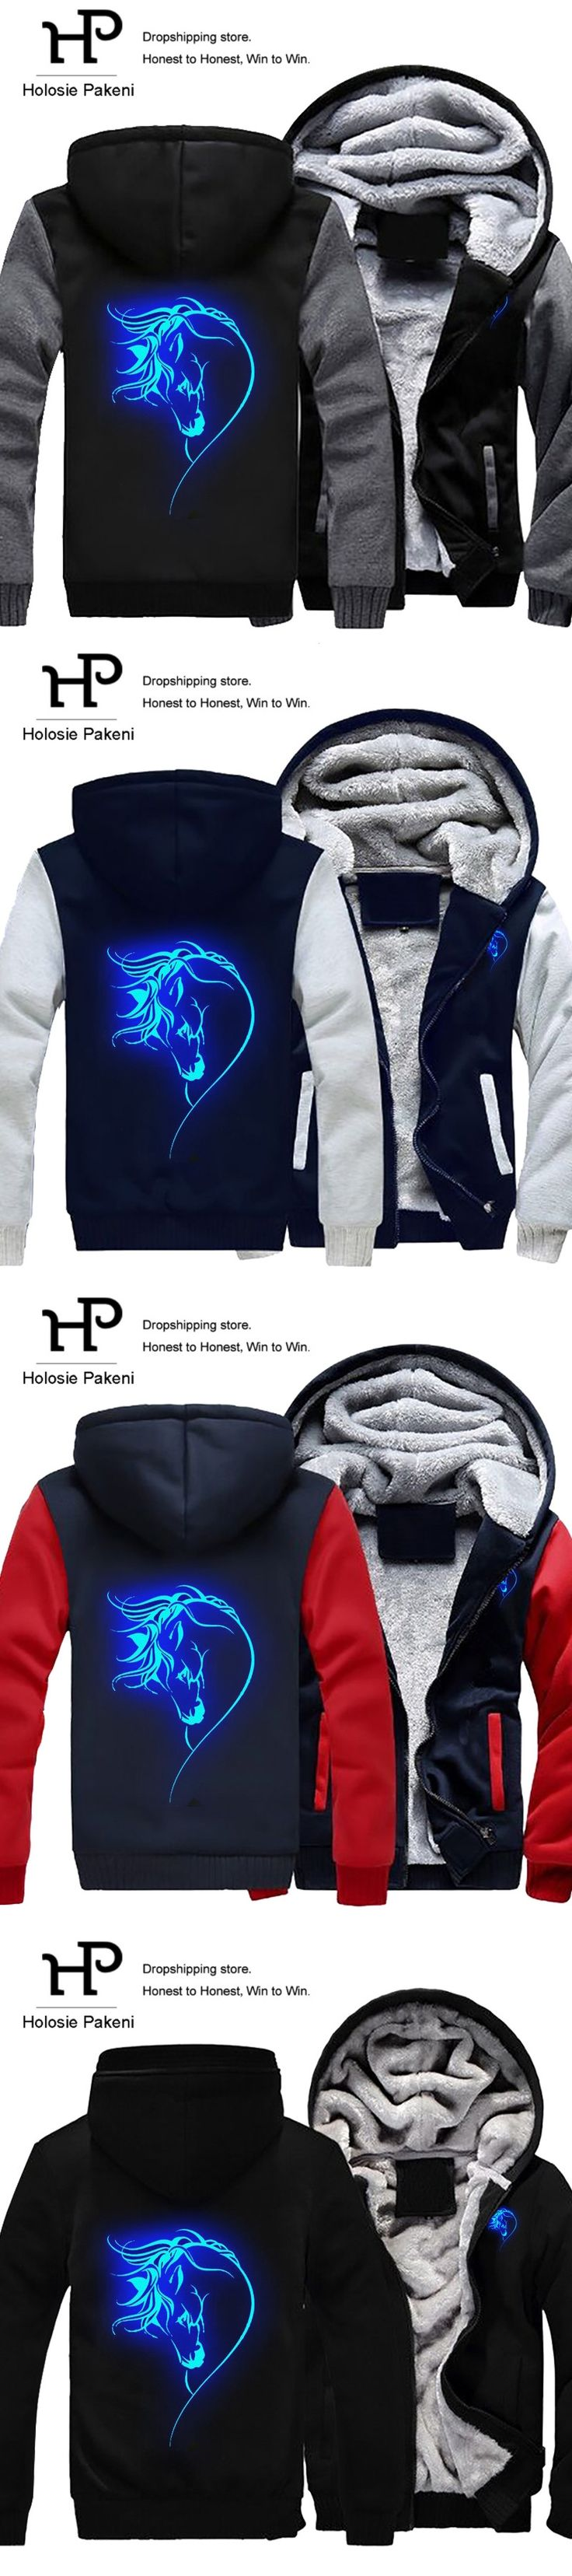 Dropshipping Animal Horse Face Glowing Hoodies Zipper Jacket Horse Funny Luminous Winter Fleece Thicken Sweatshirt Hooded Coat